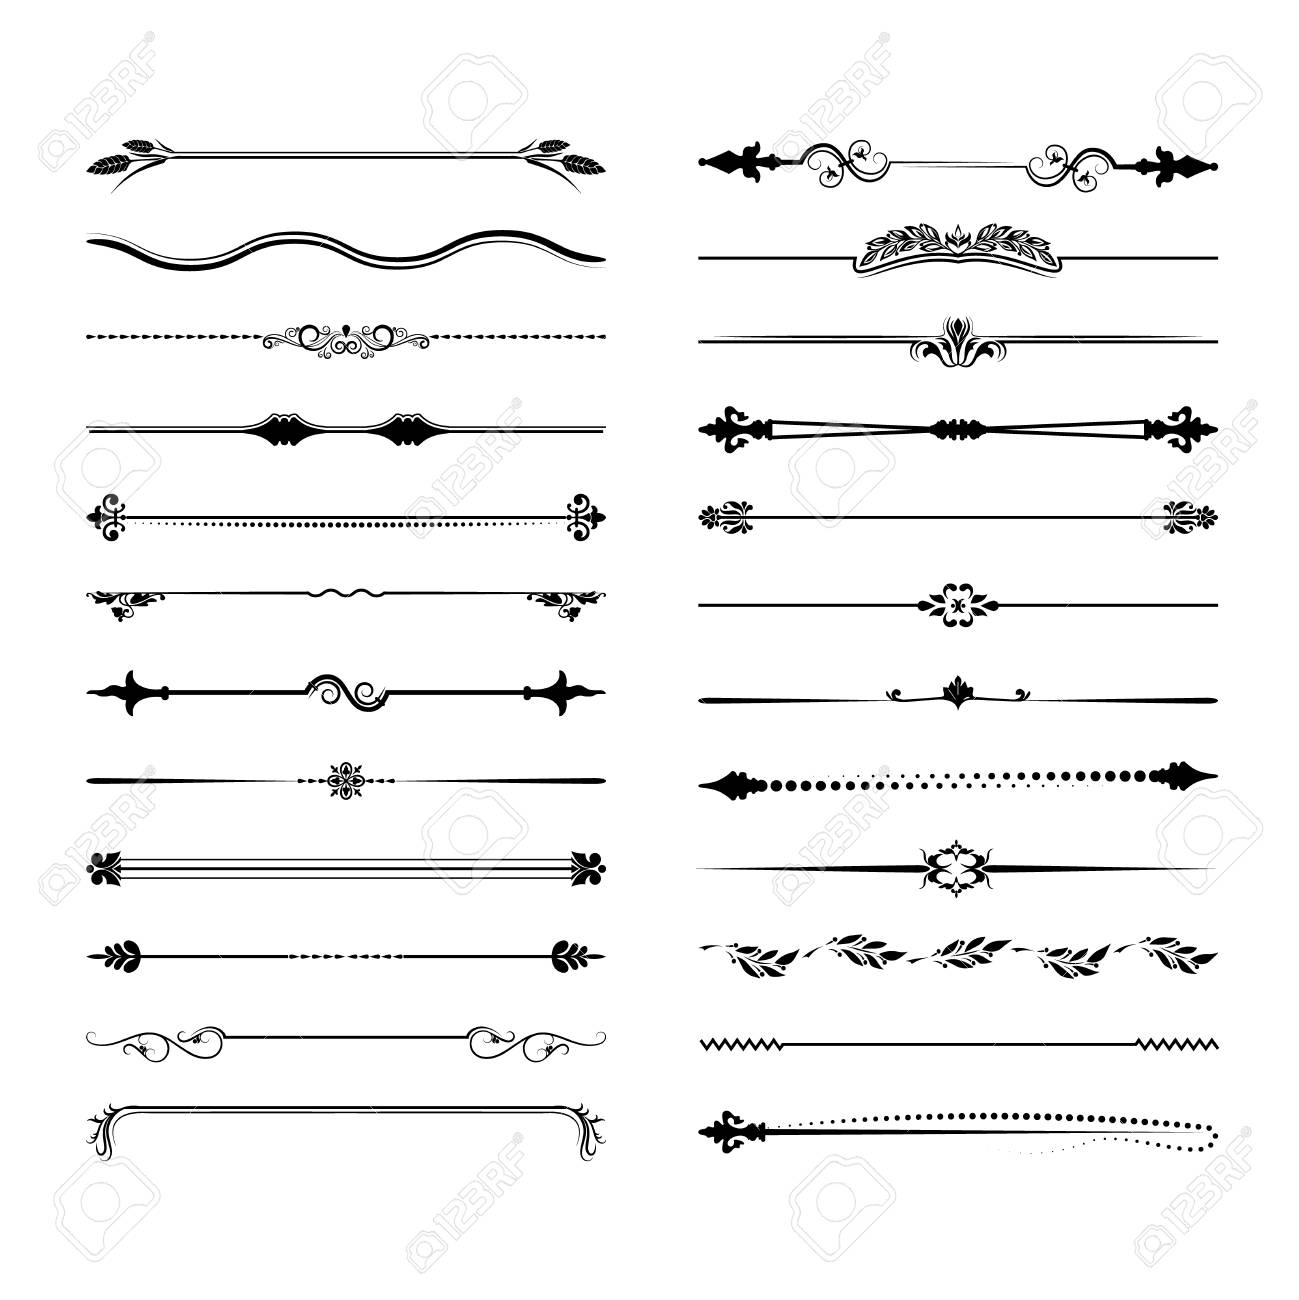 Collection of vector dividers. Can be used for design, letters, jewelry, gifts, notebooks. Vector illustration - 126453178